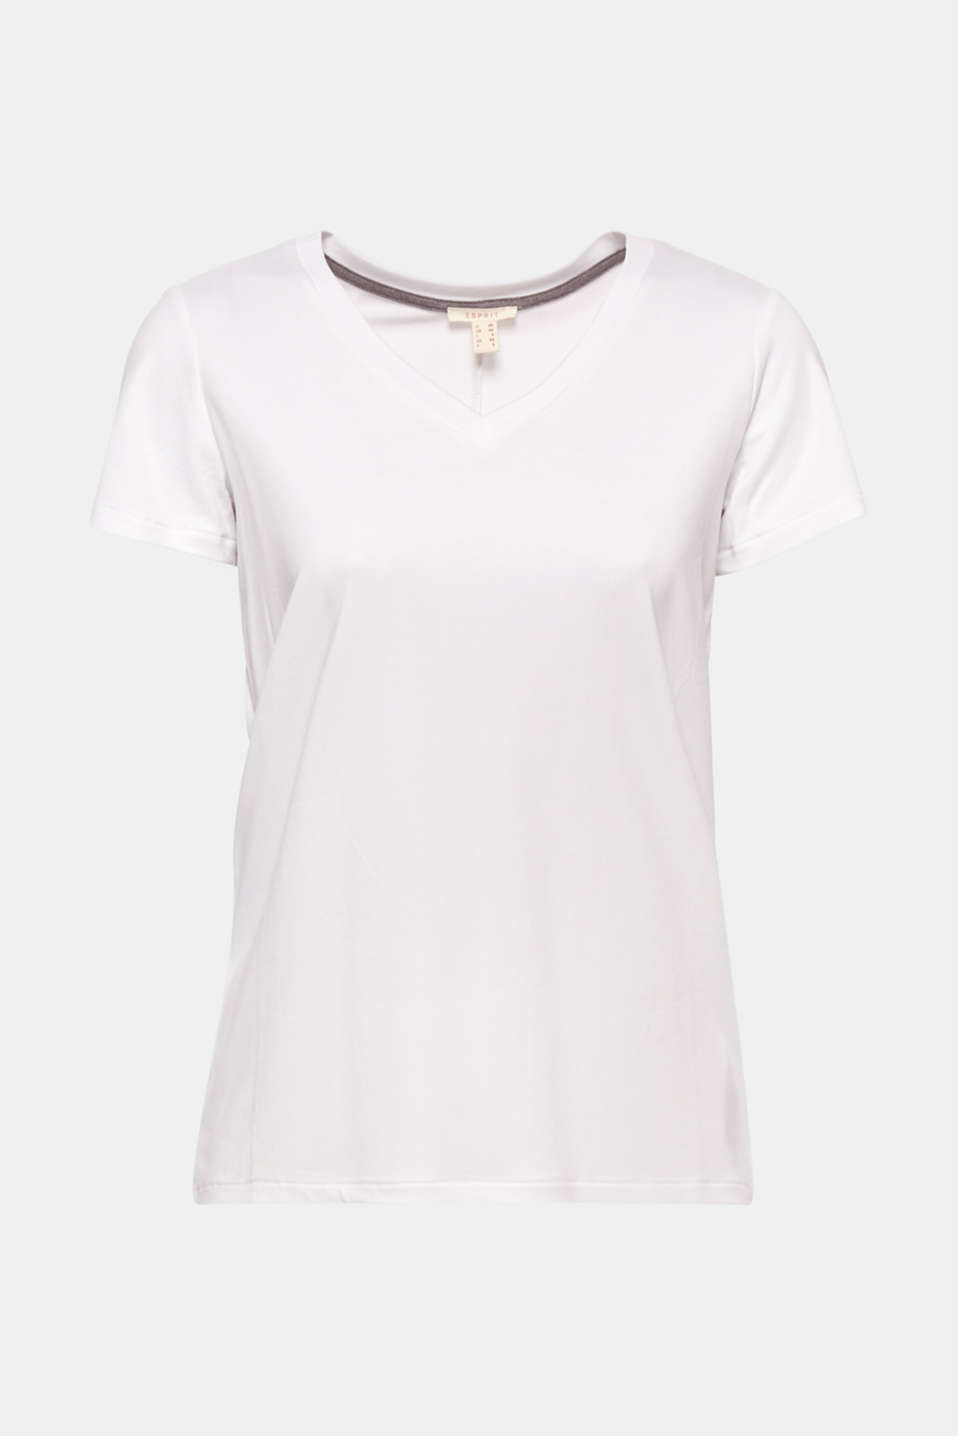 A casual basic! The large V-neckline and the high-low hem make this T-shirt extremely eye-catching.